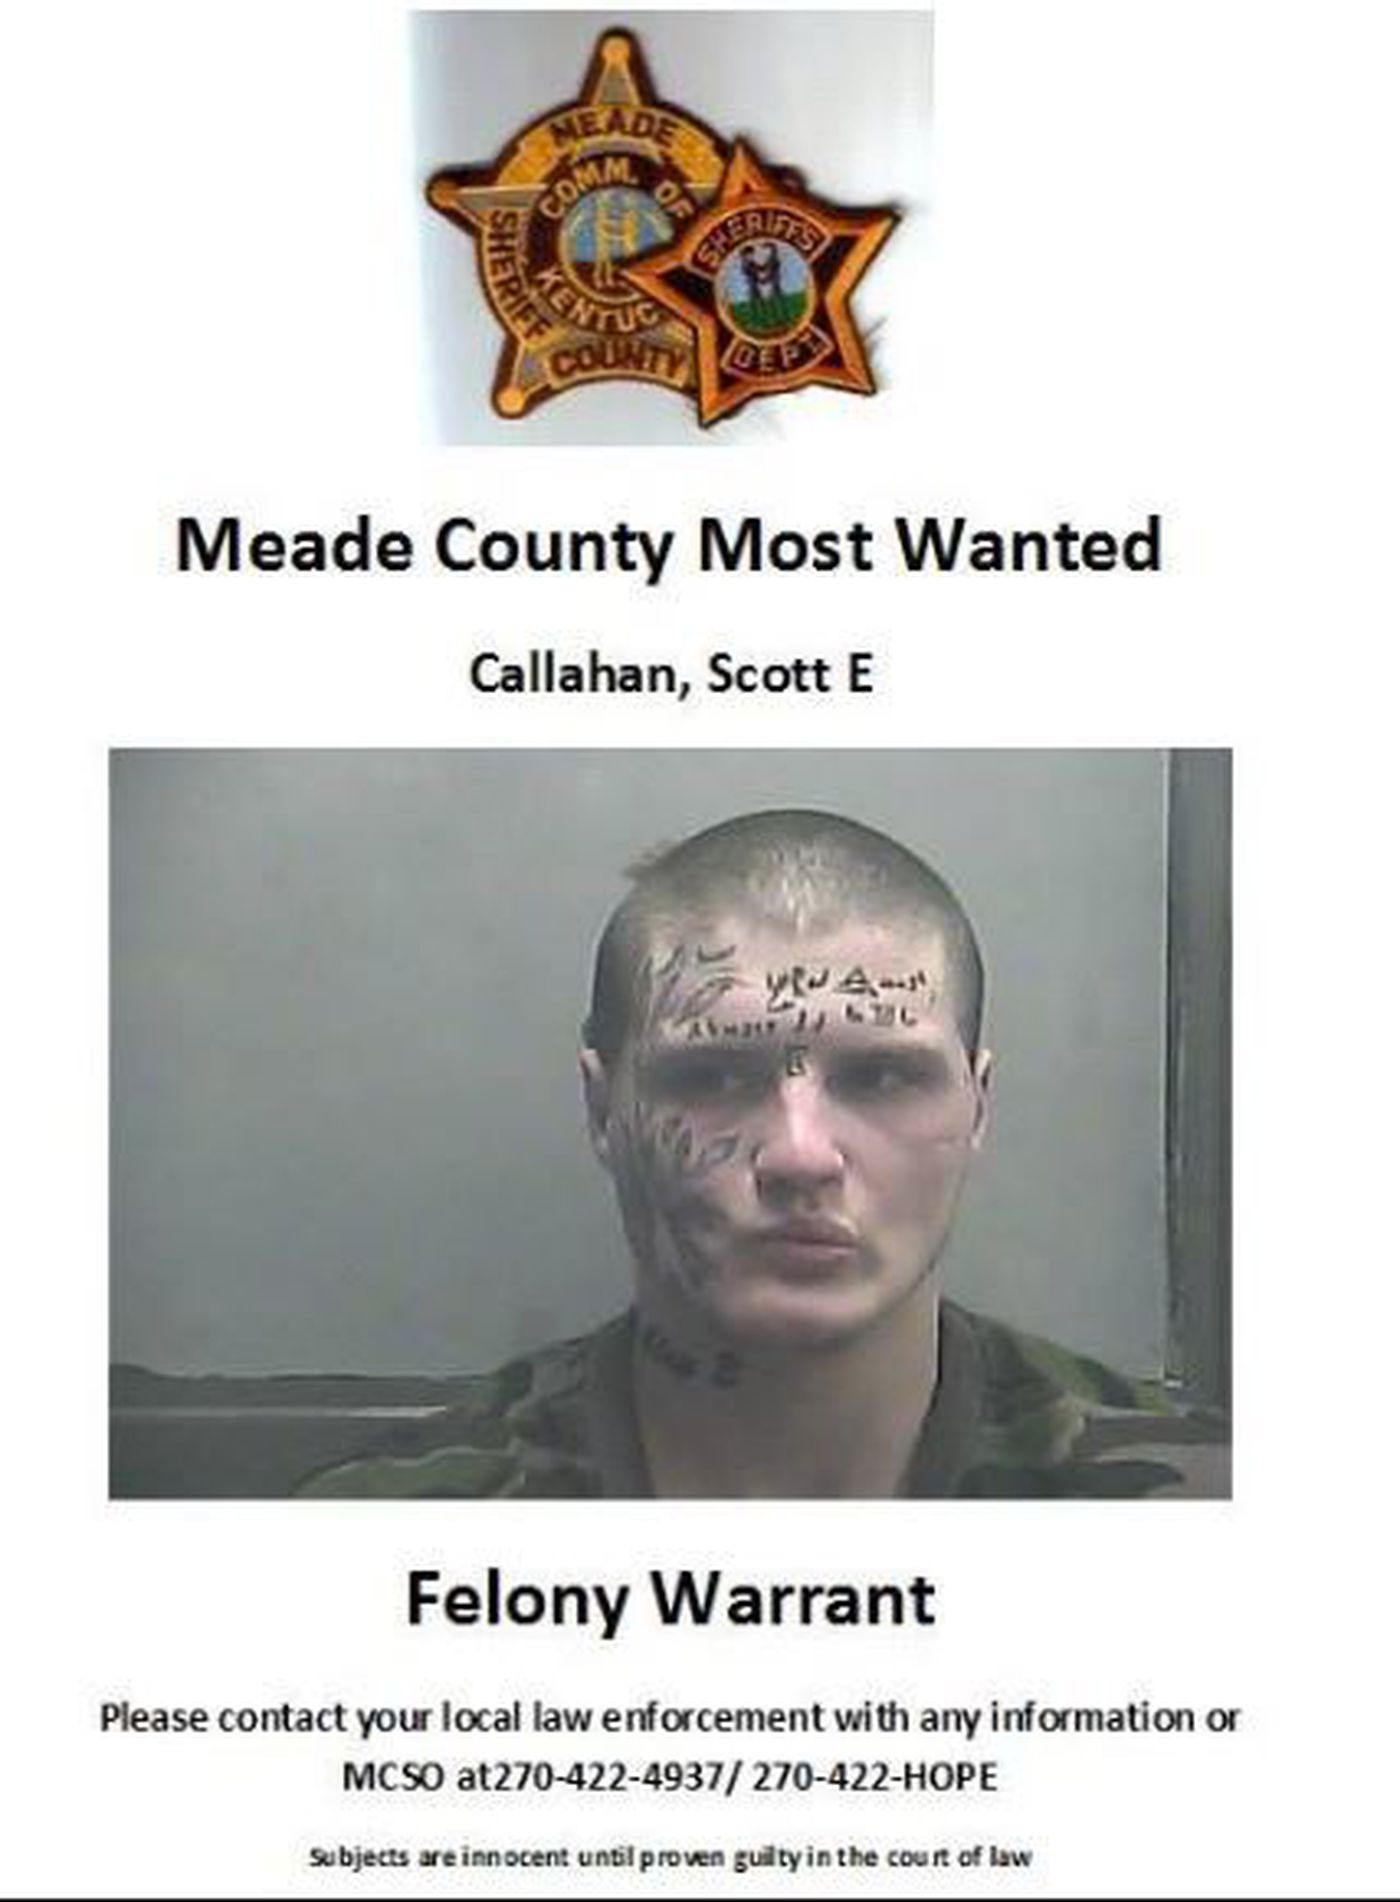 Meade Co  issues felony warrant for man on Most Wanted list